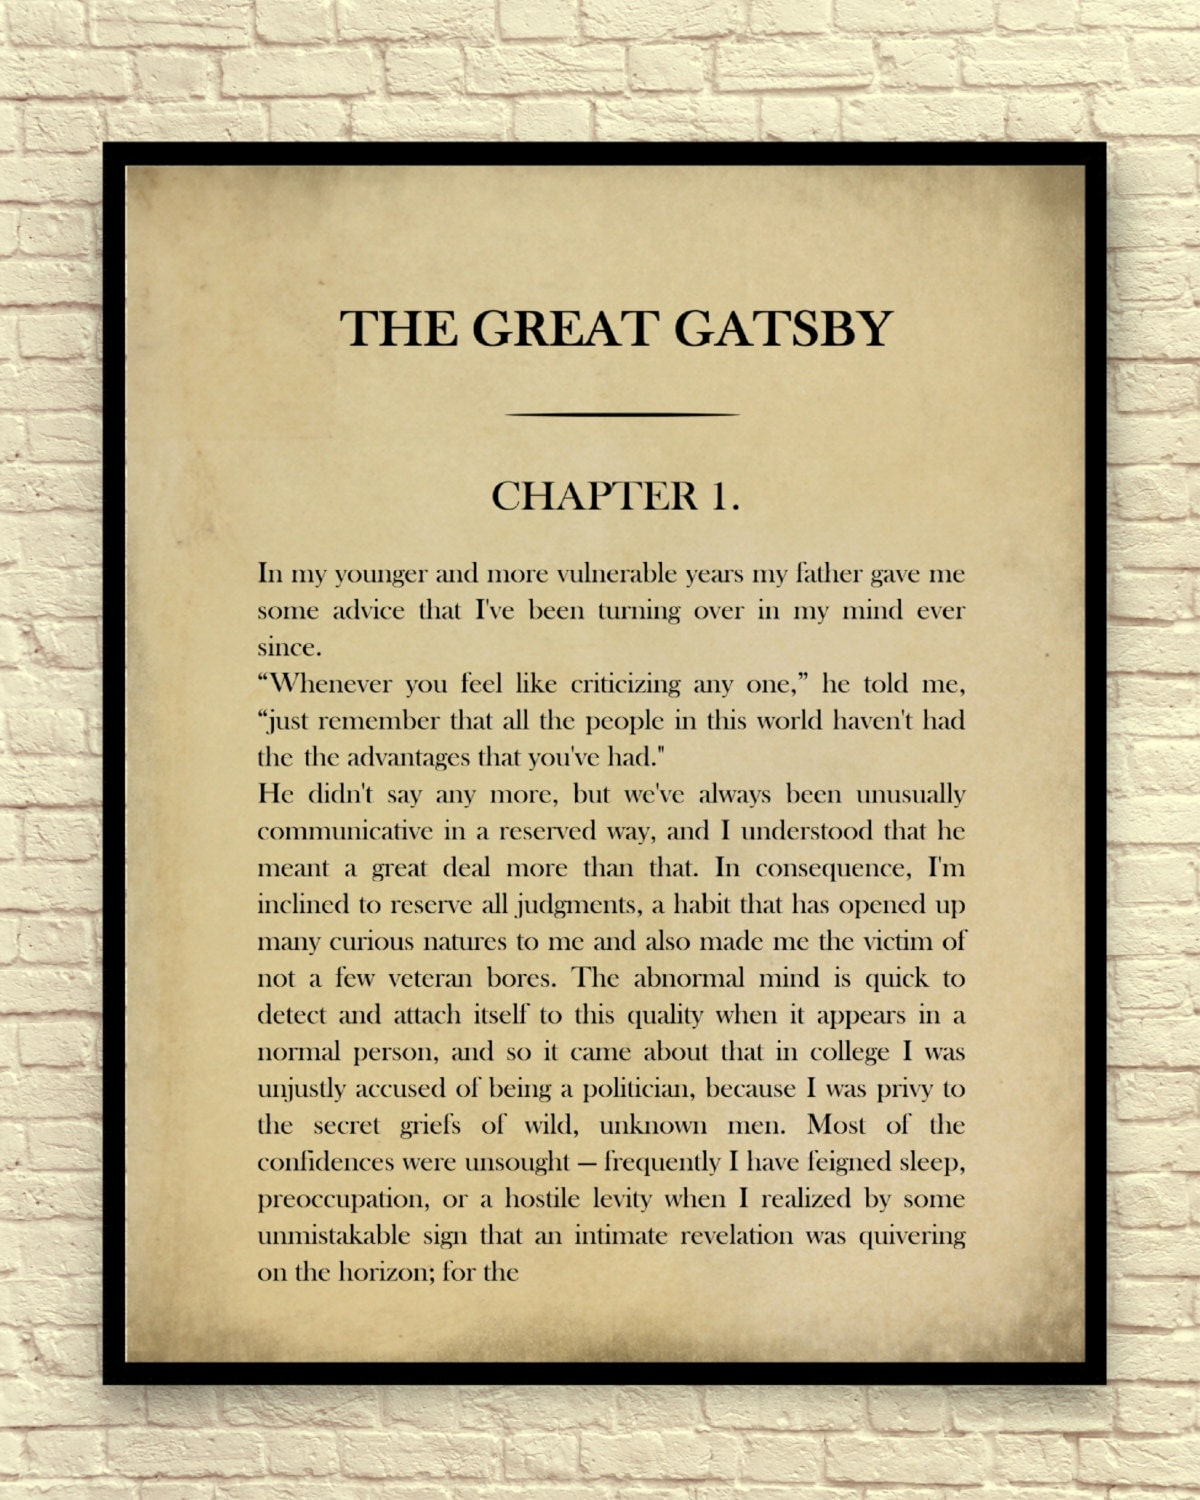 the great gatsby full book pdf